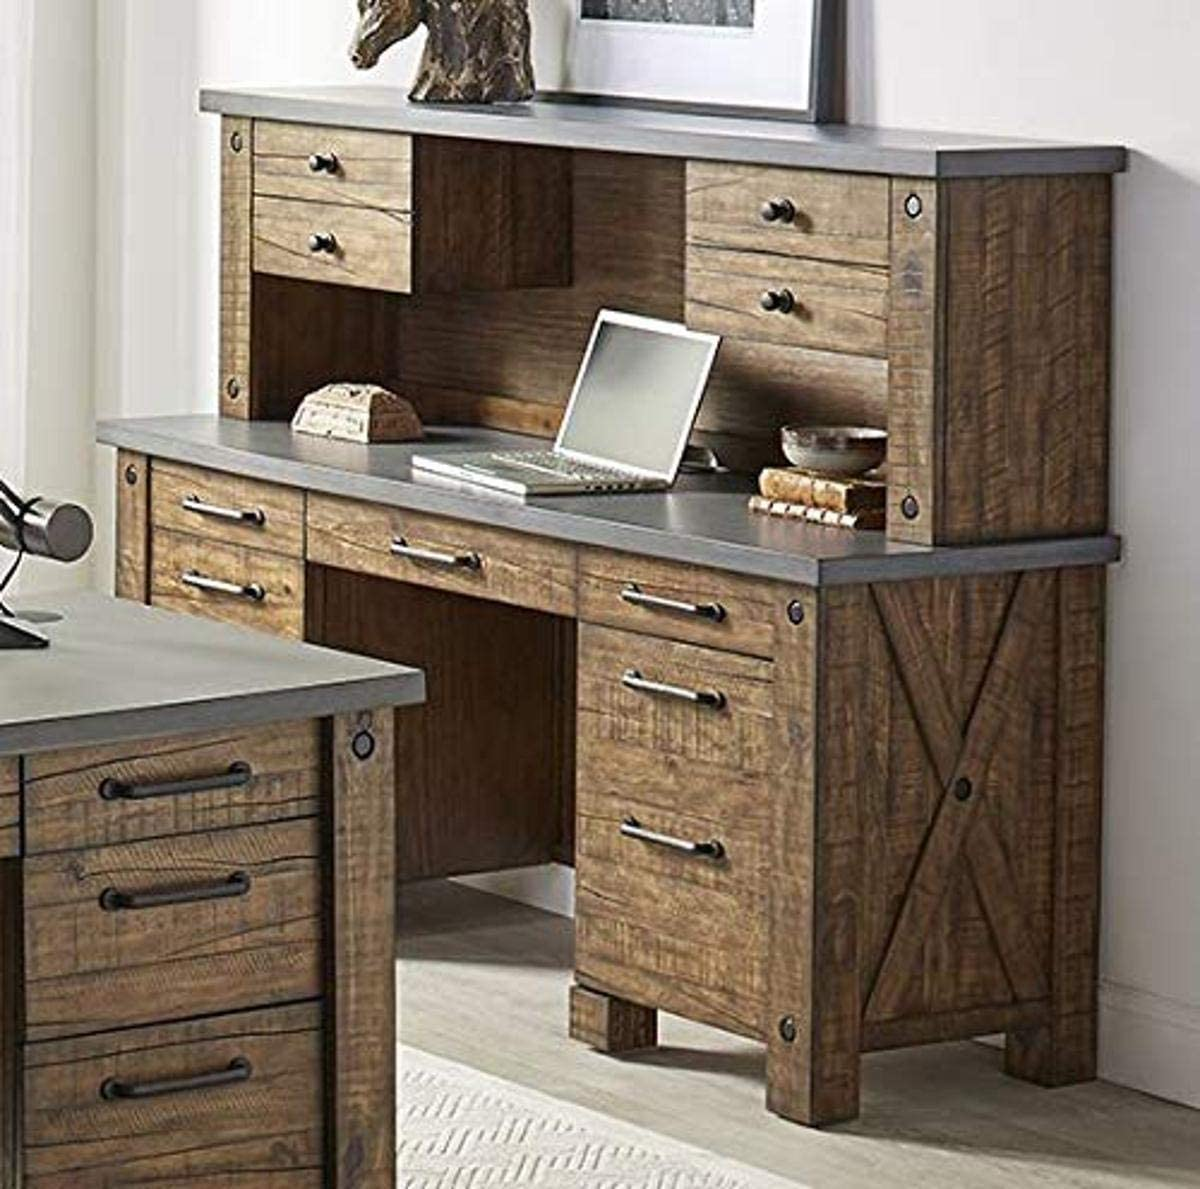 Martin Furniture IMJA689-470-KIT Sale special price Credenza and Award-winning store Brown Hutch Low